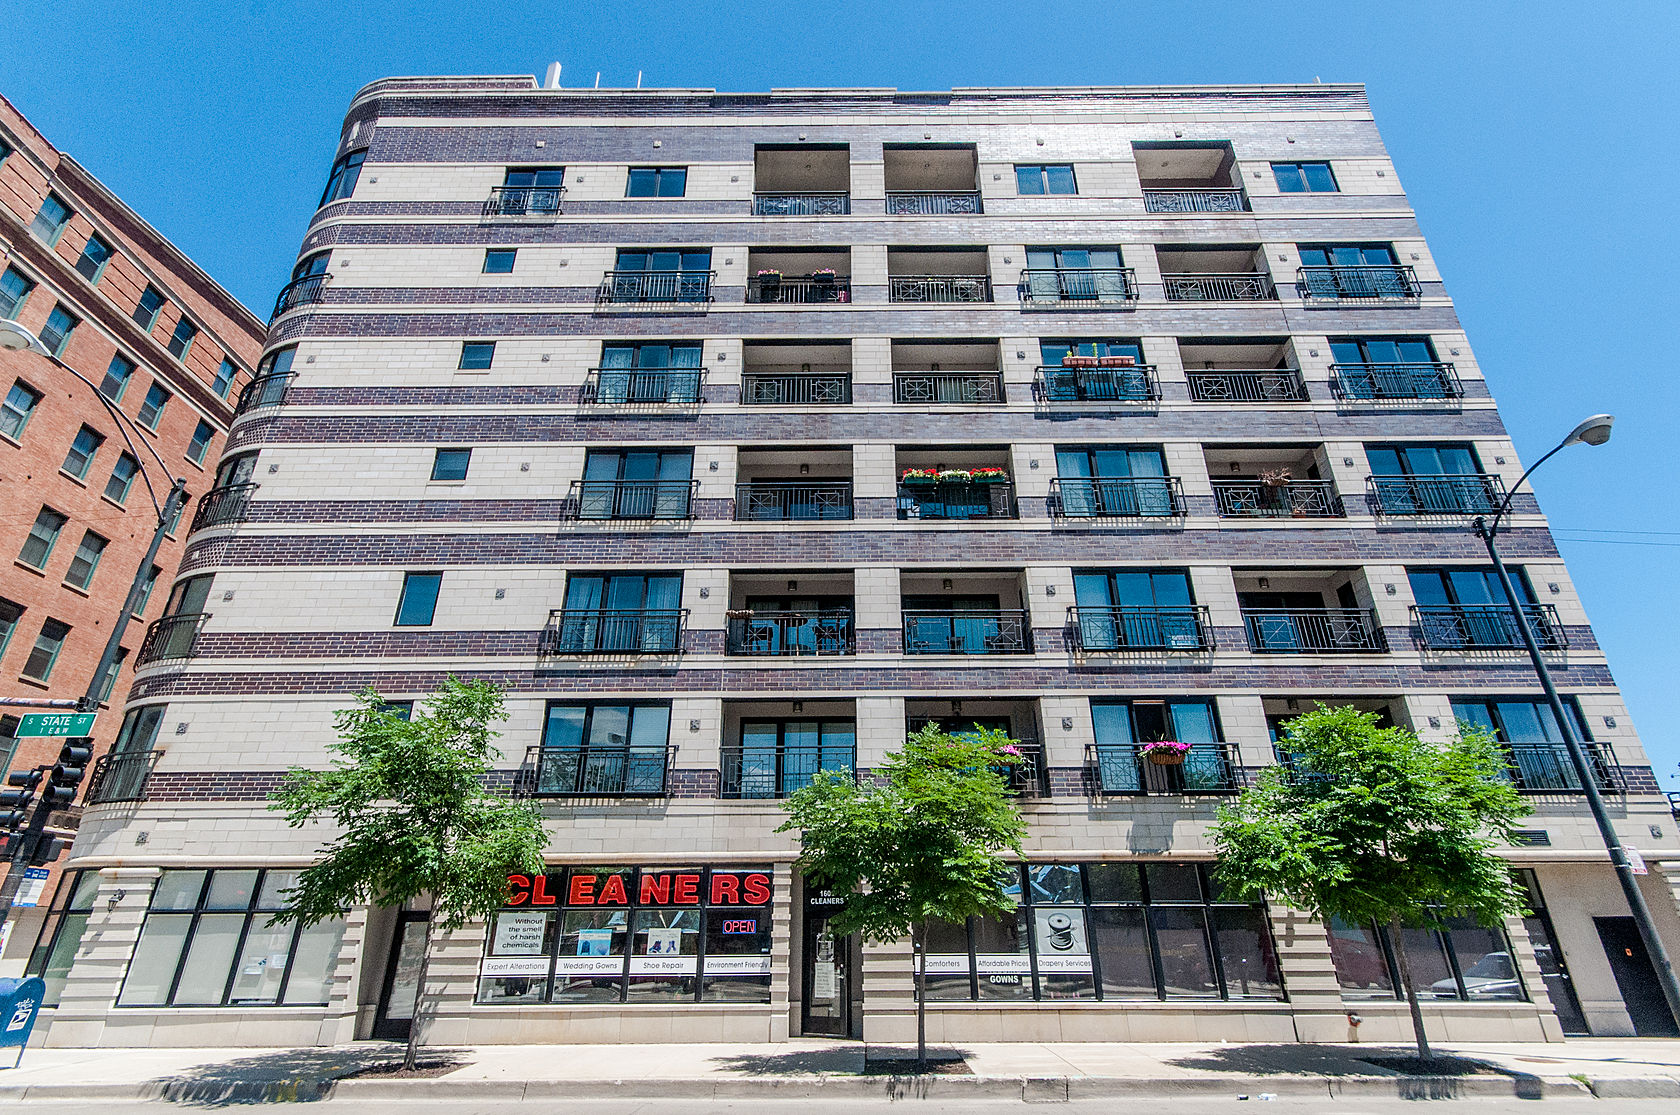 Condominium for Sale at Absolutely Stunning South Loop Beauty! 1601 S State Street Unit 6C Near South Side, Chicago, Illinois 60616 United States